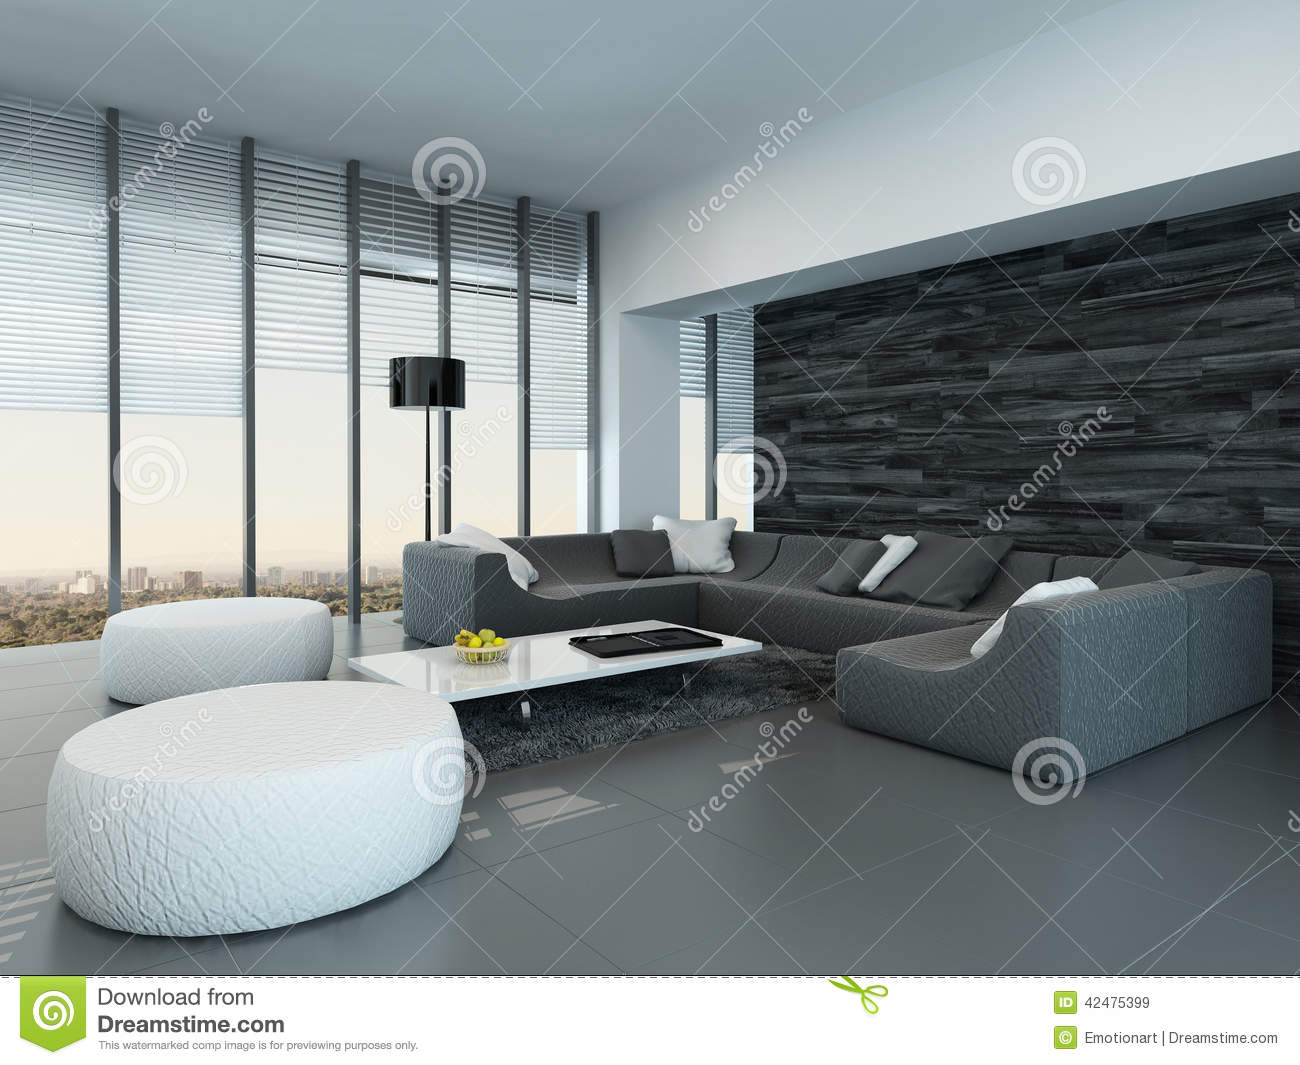 Modern Grey Living Room Interior Stock Illustration - Image: 41965561